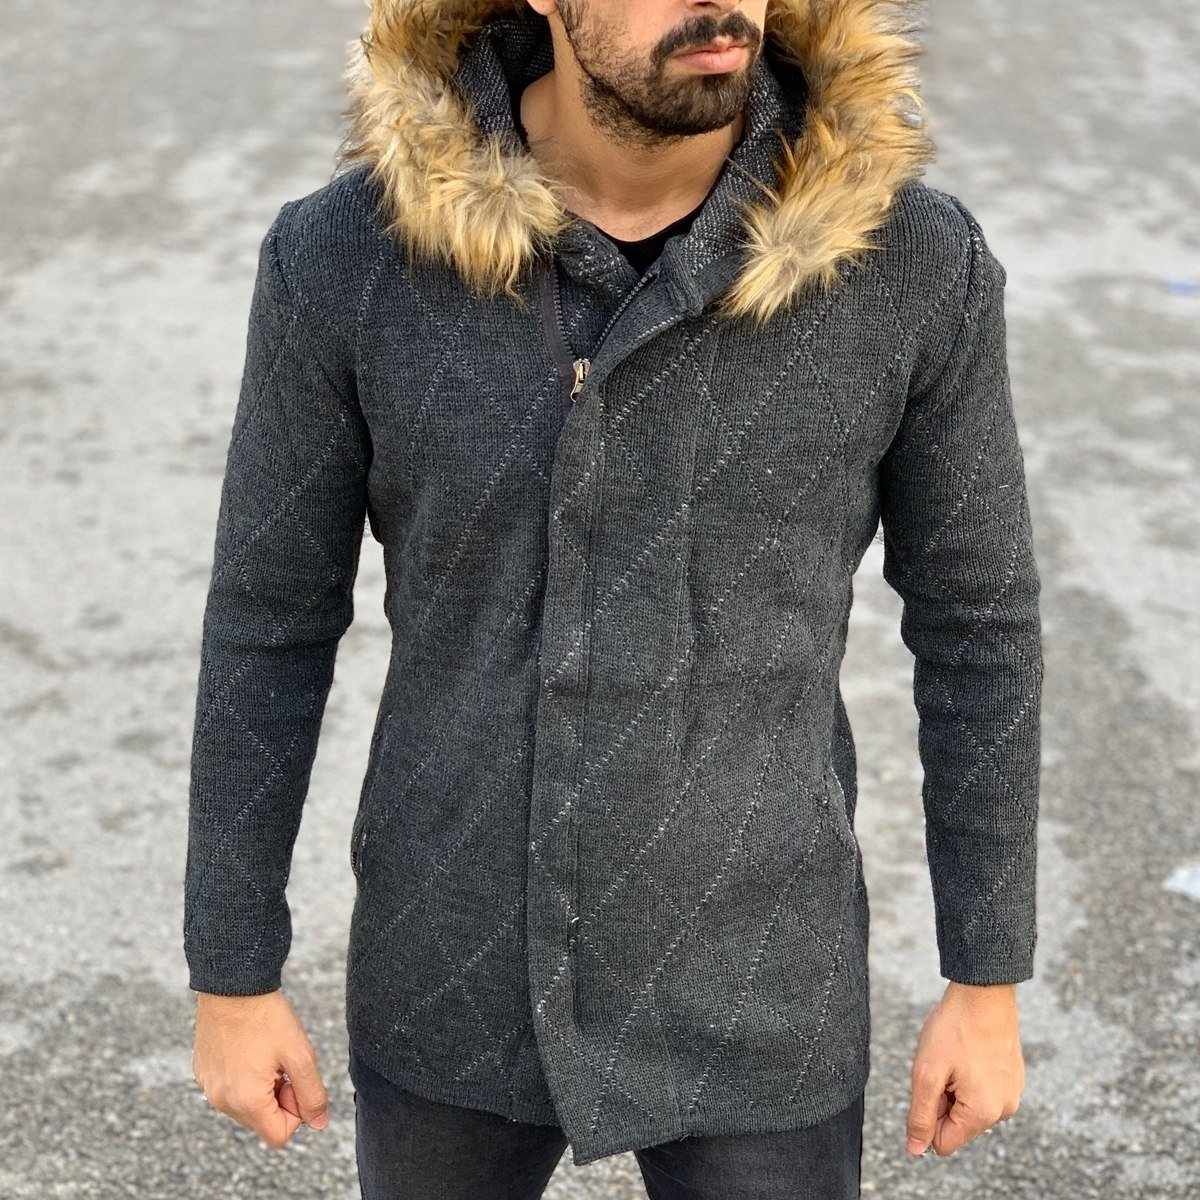 Quilted Pattern Fur-Hood Cardigan Jacket in Charcoal Grey